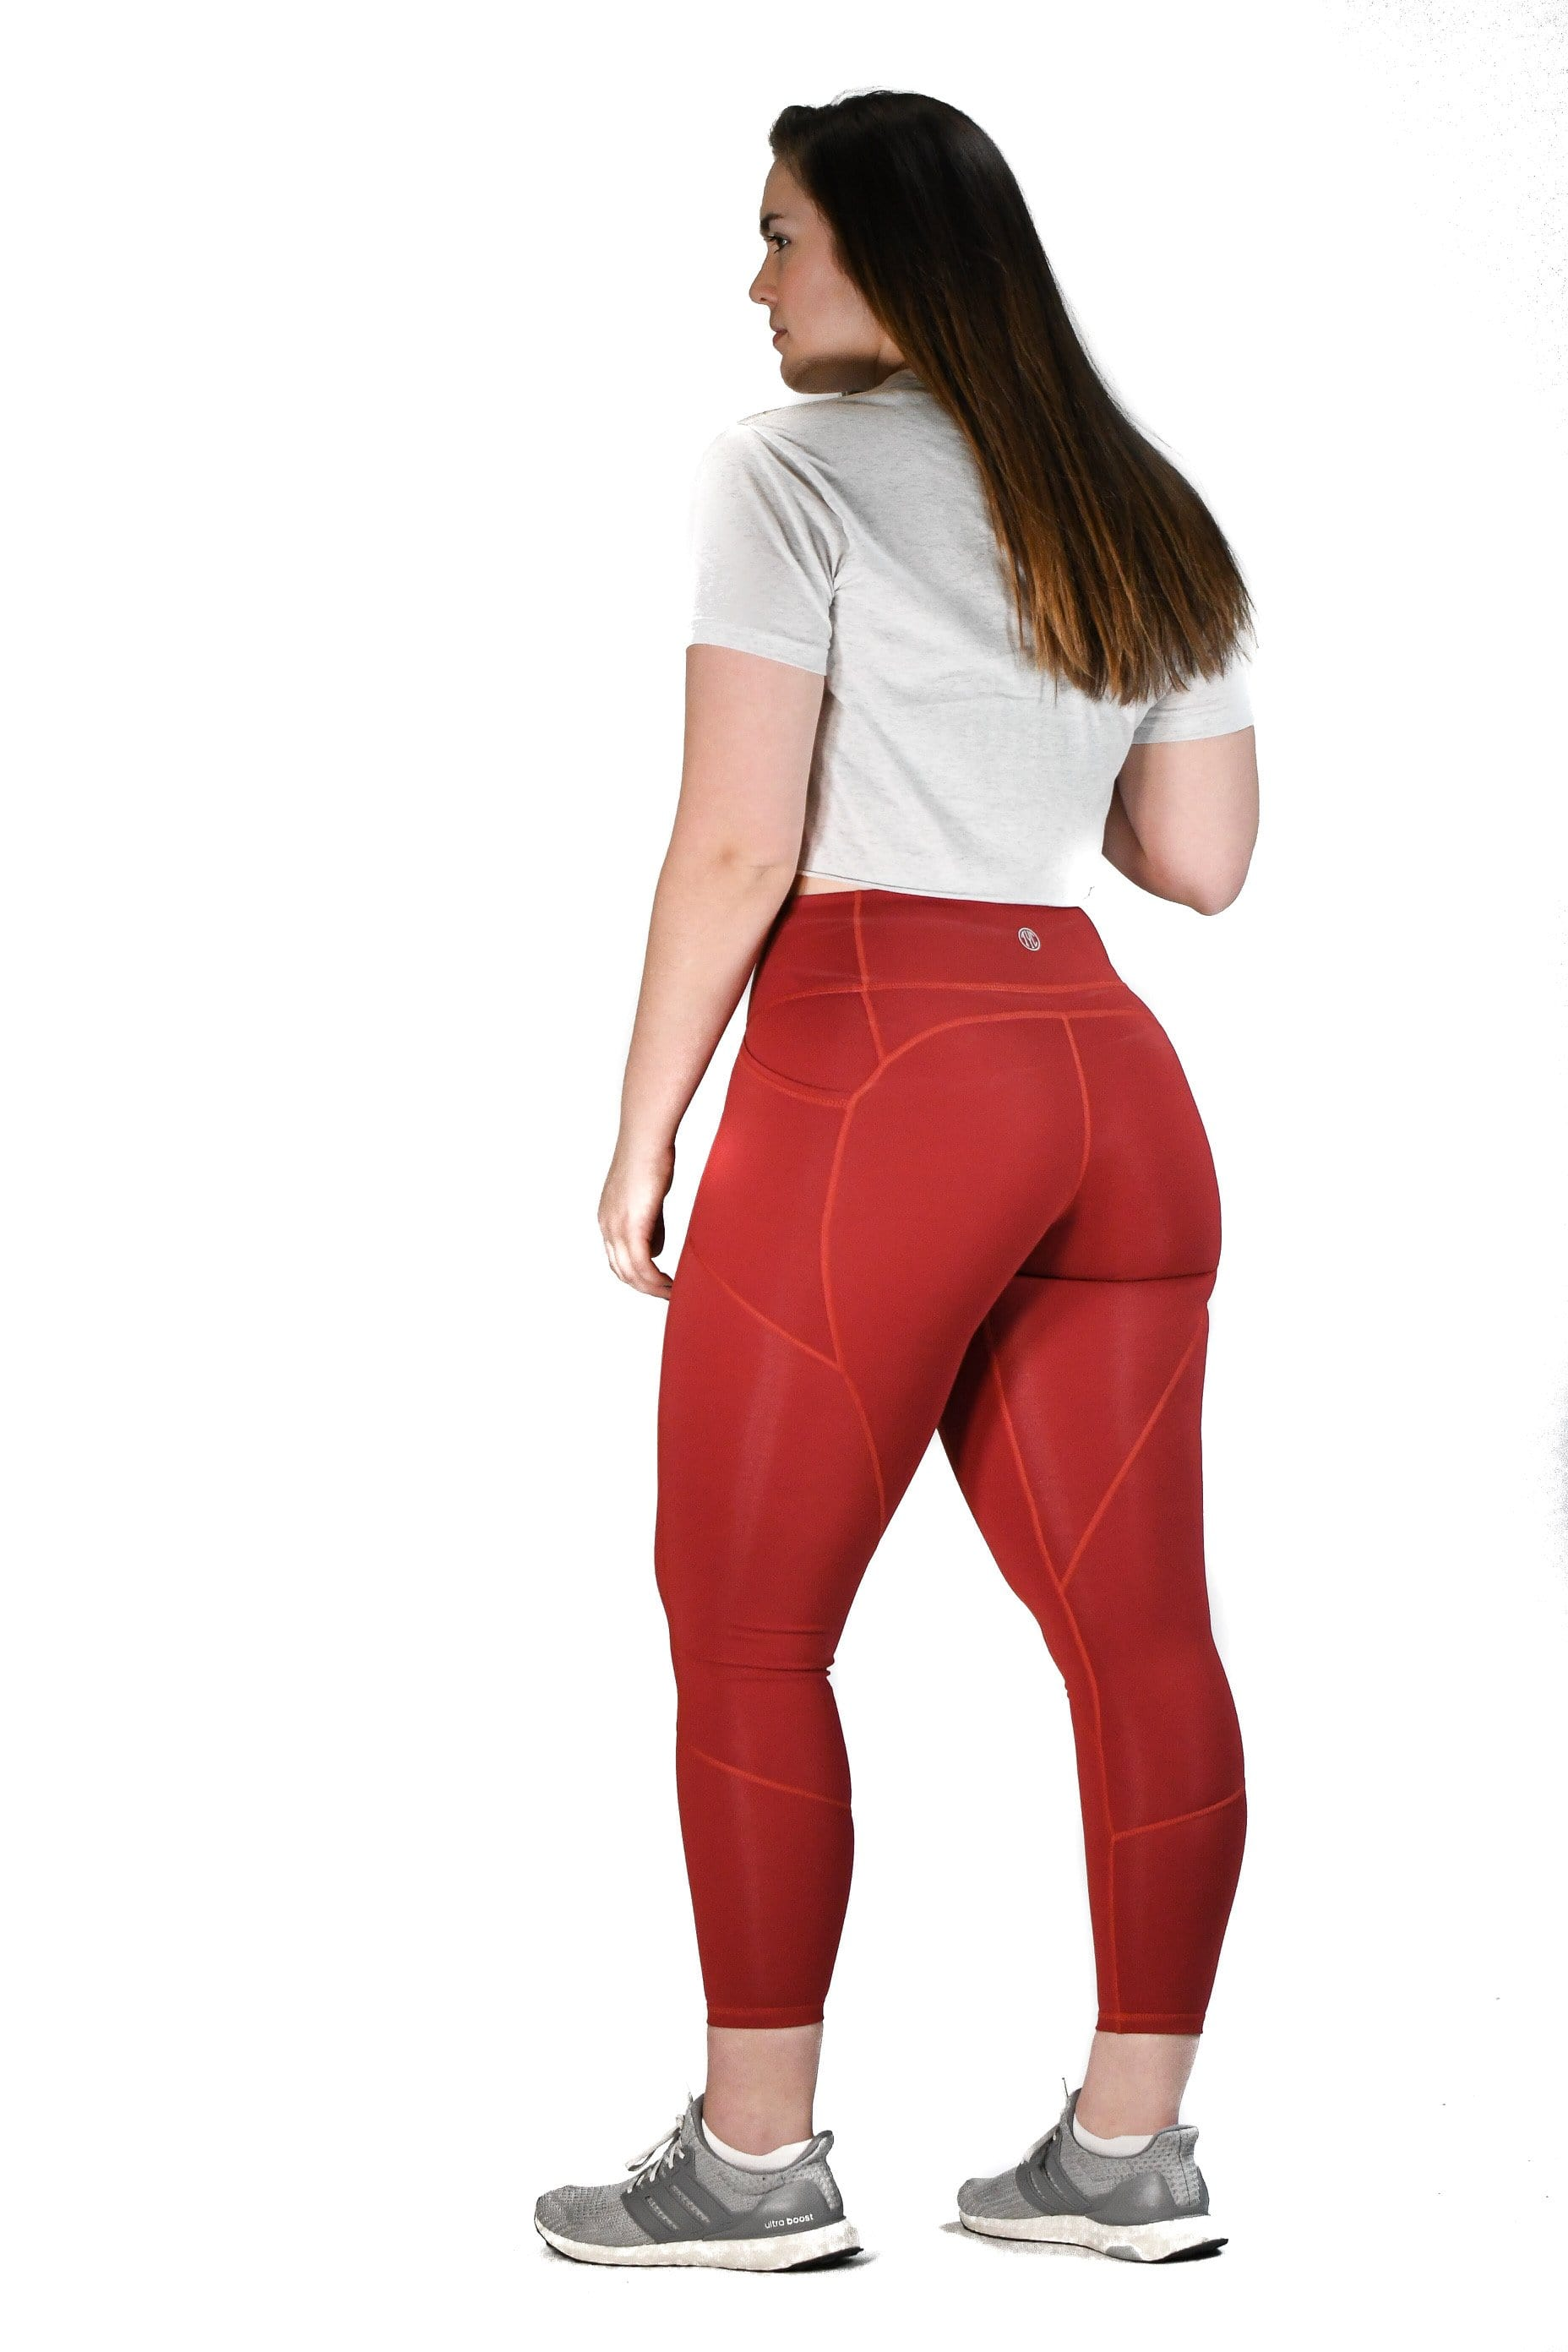 Resilient Heart Booty Leggings- Copper